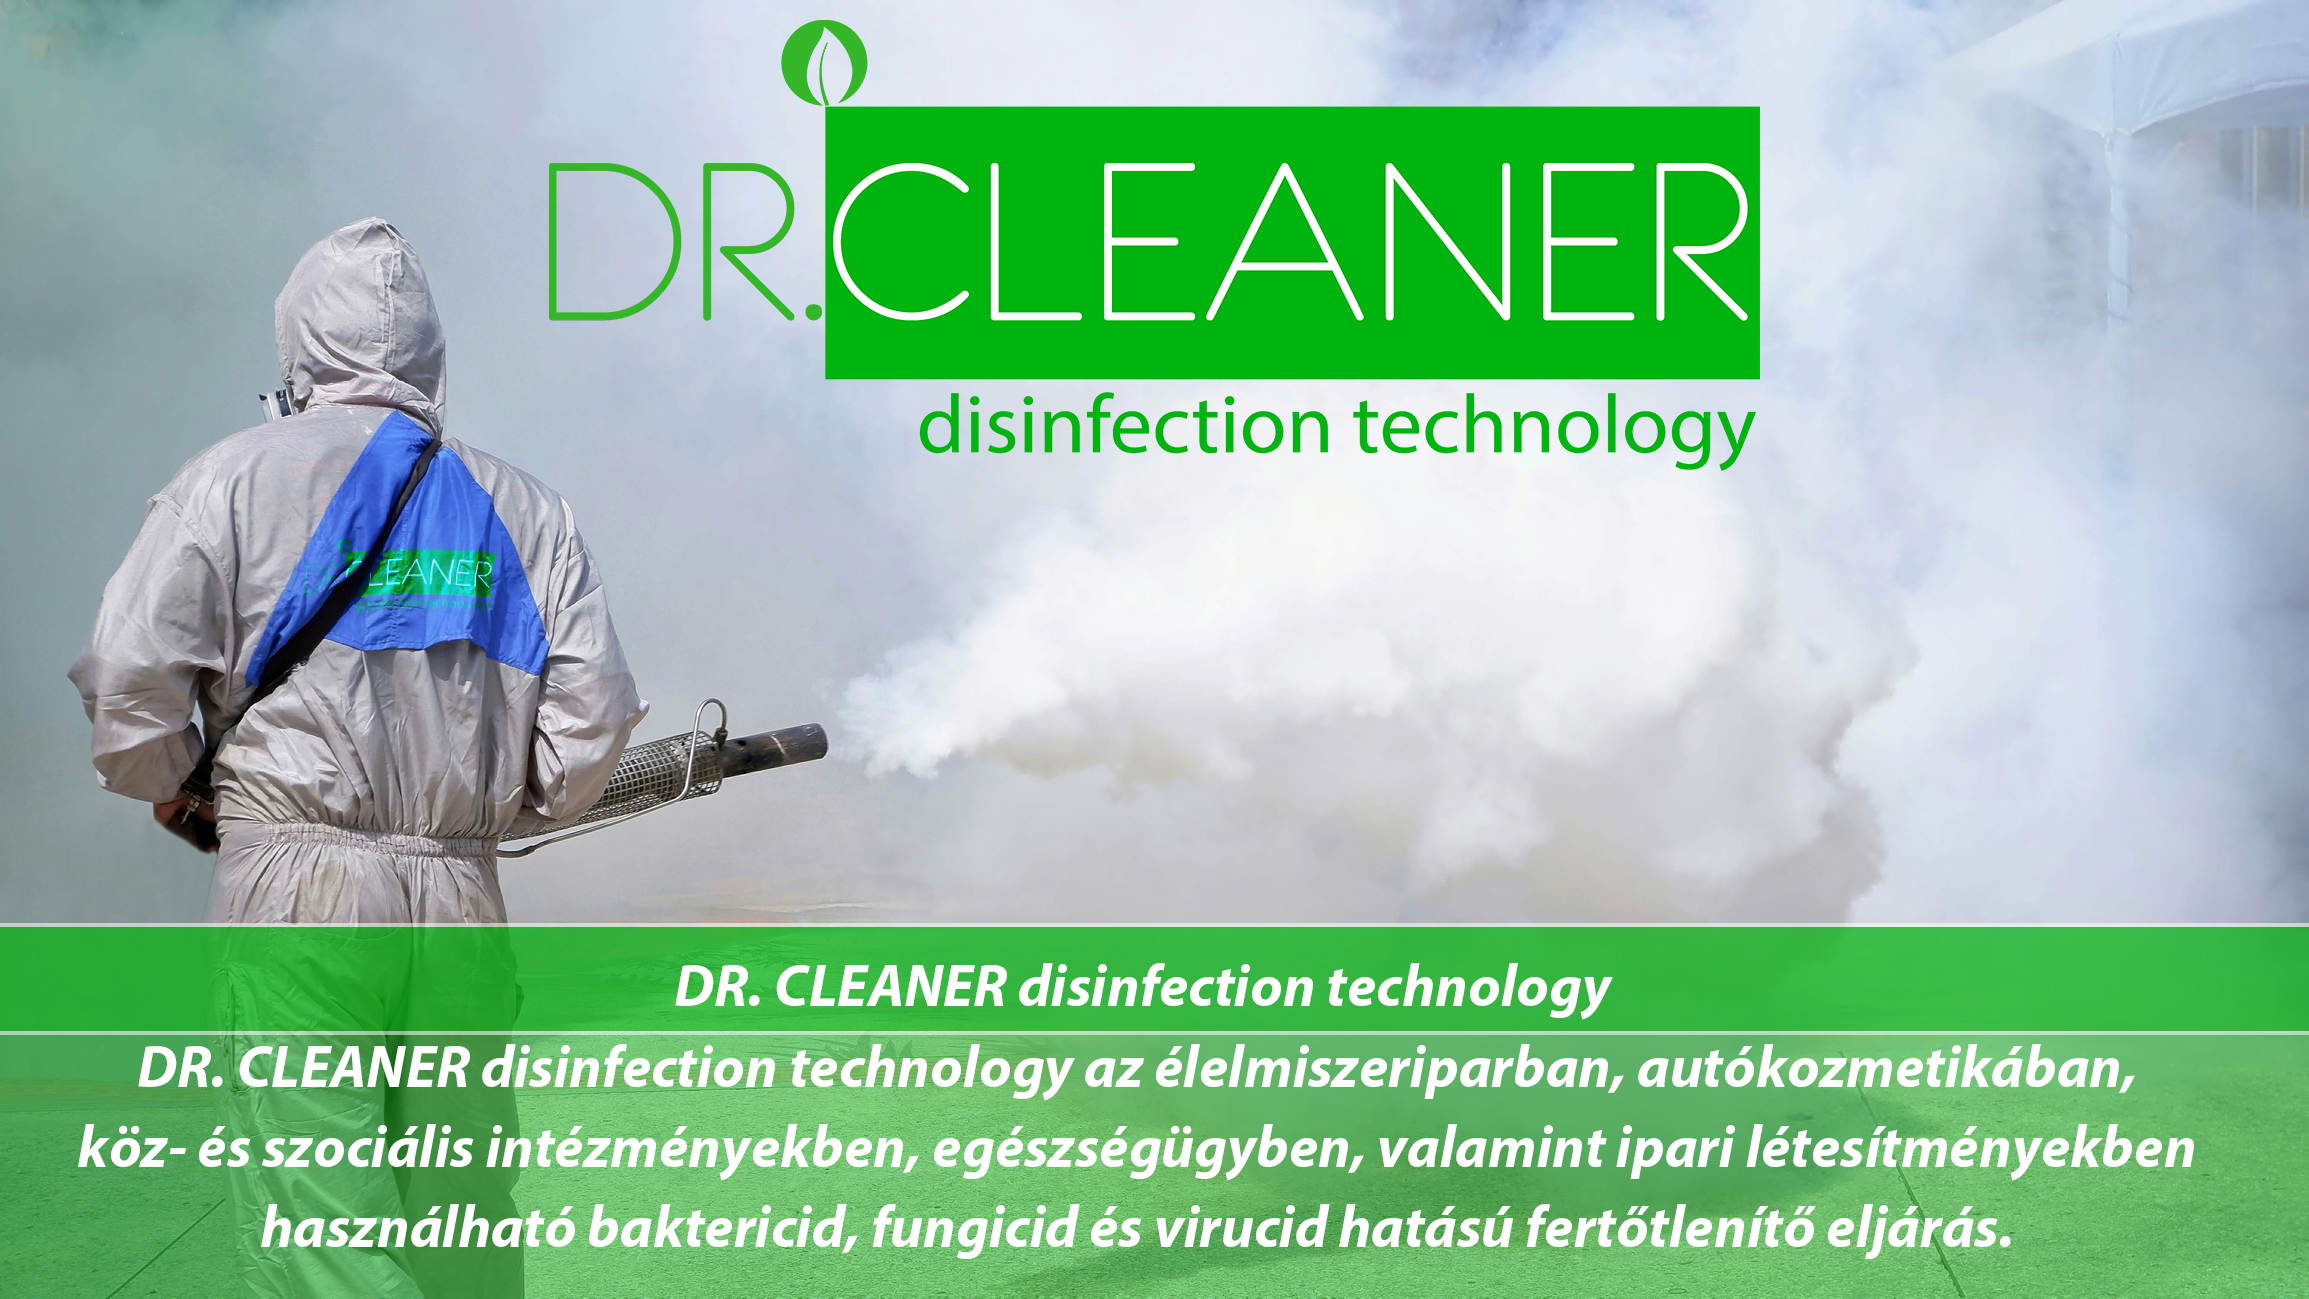 dr_cleaner_fertotlenitesi_technologia.jpg